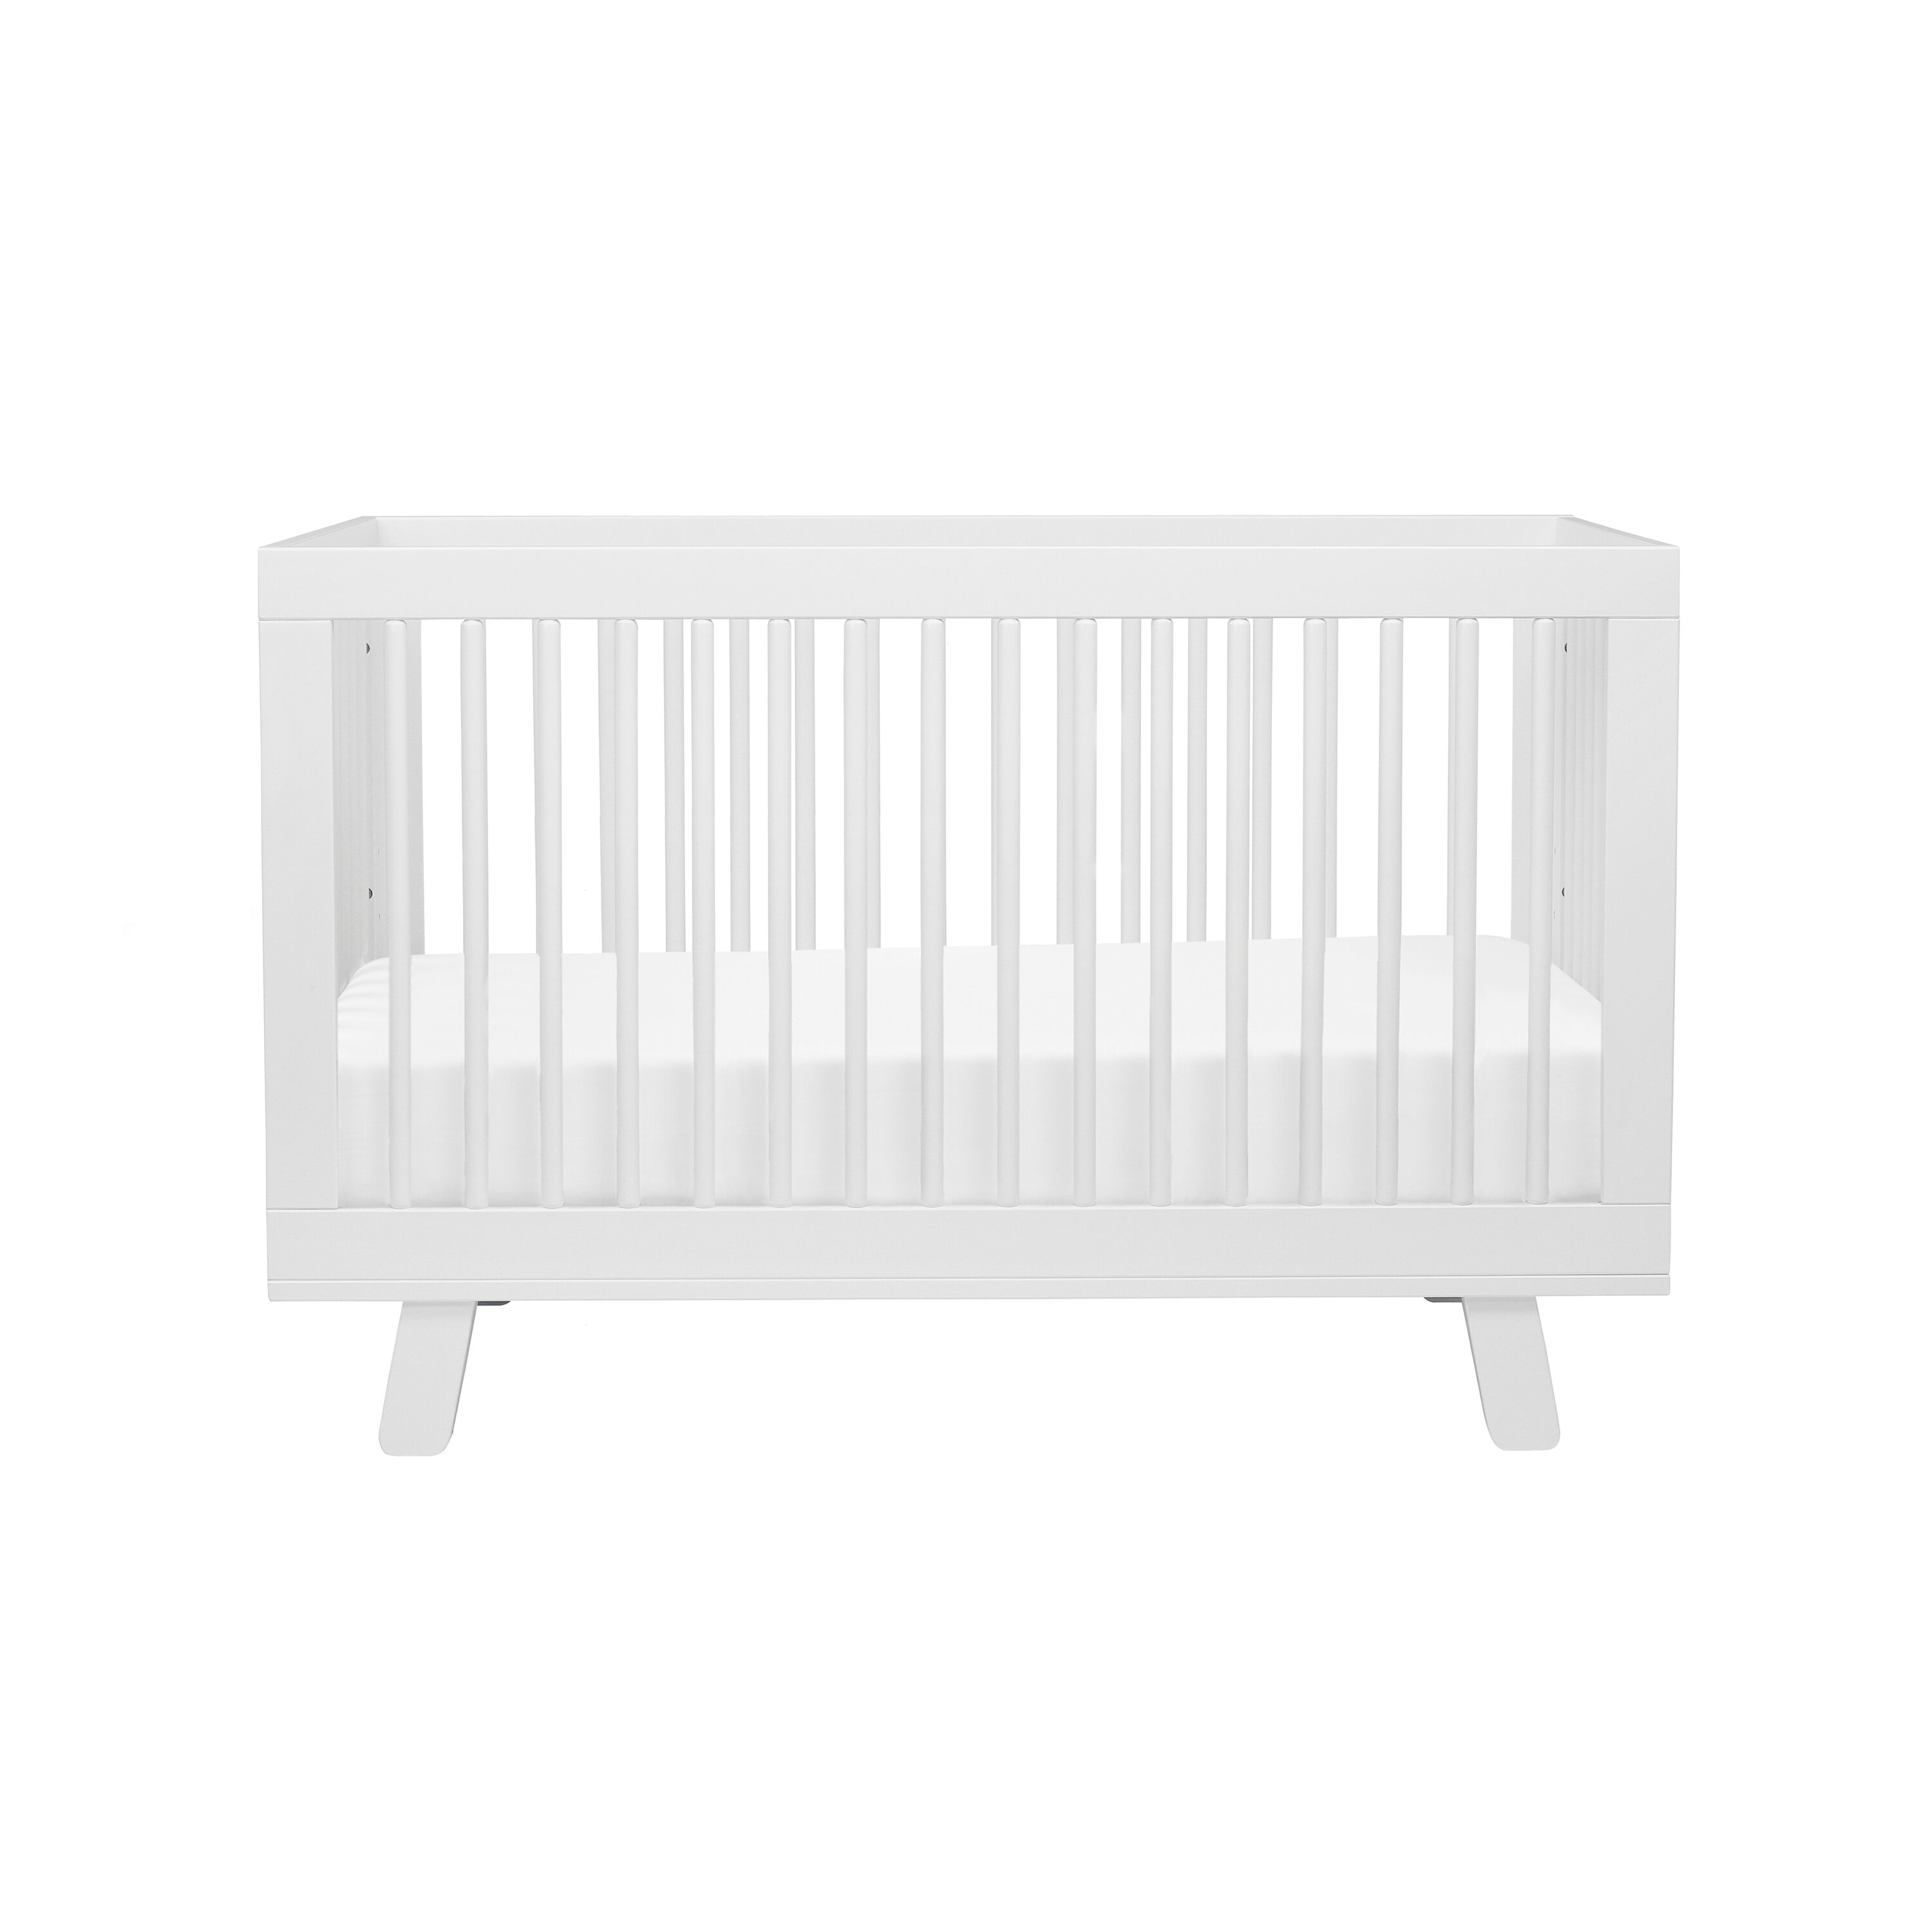 Used crib for sale edmonton - Quick View